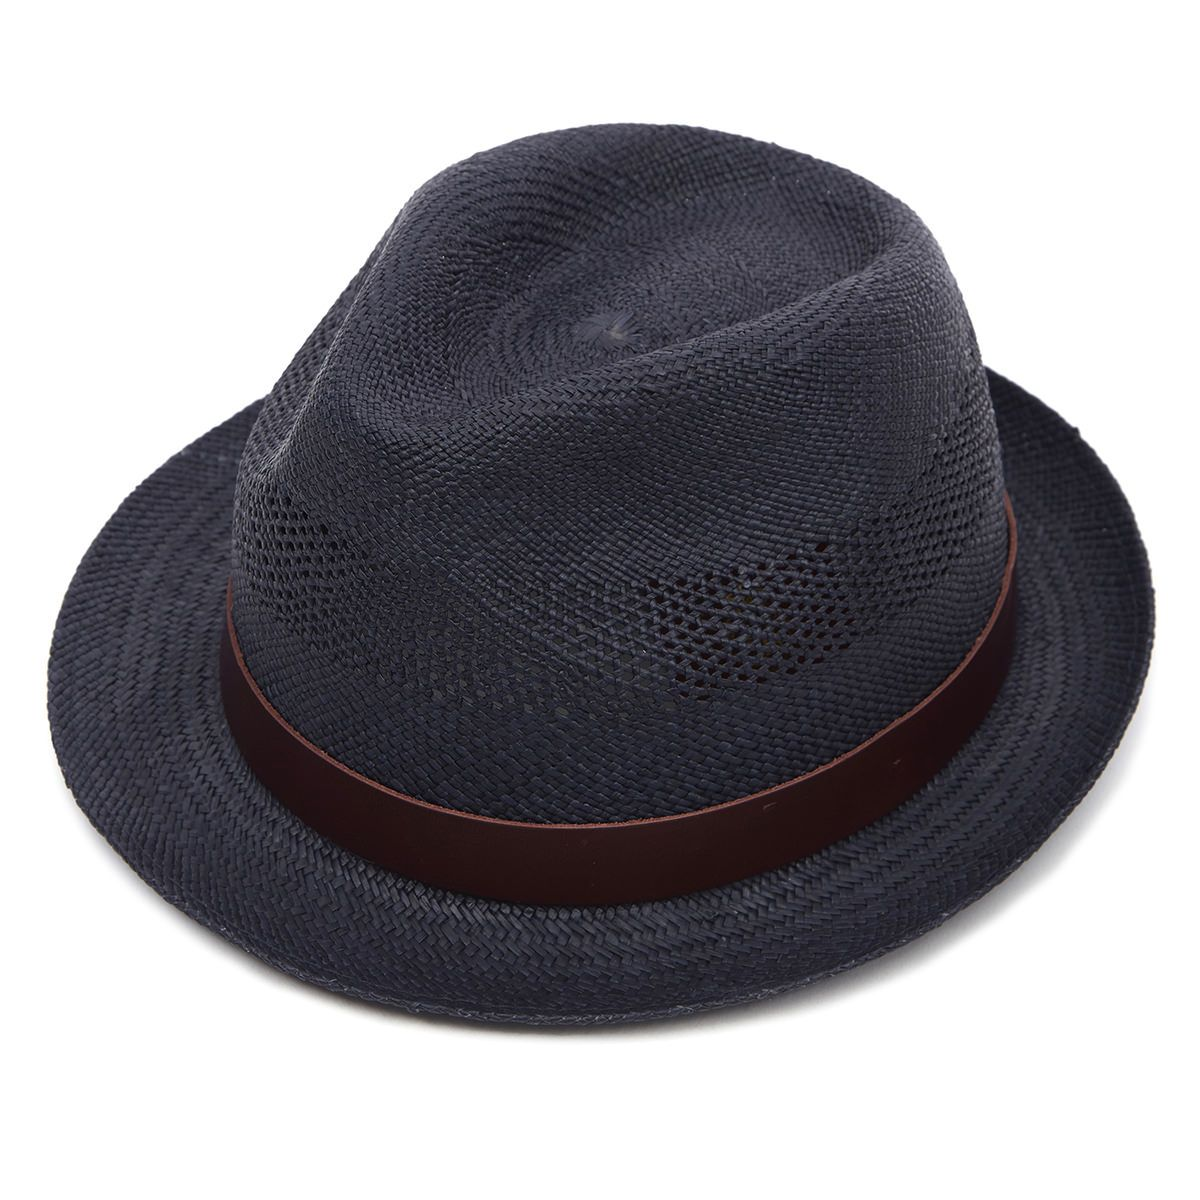 Carnaby Trilby Panama Hat - Navy Perforated 60